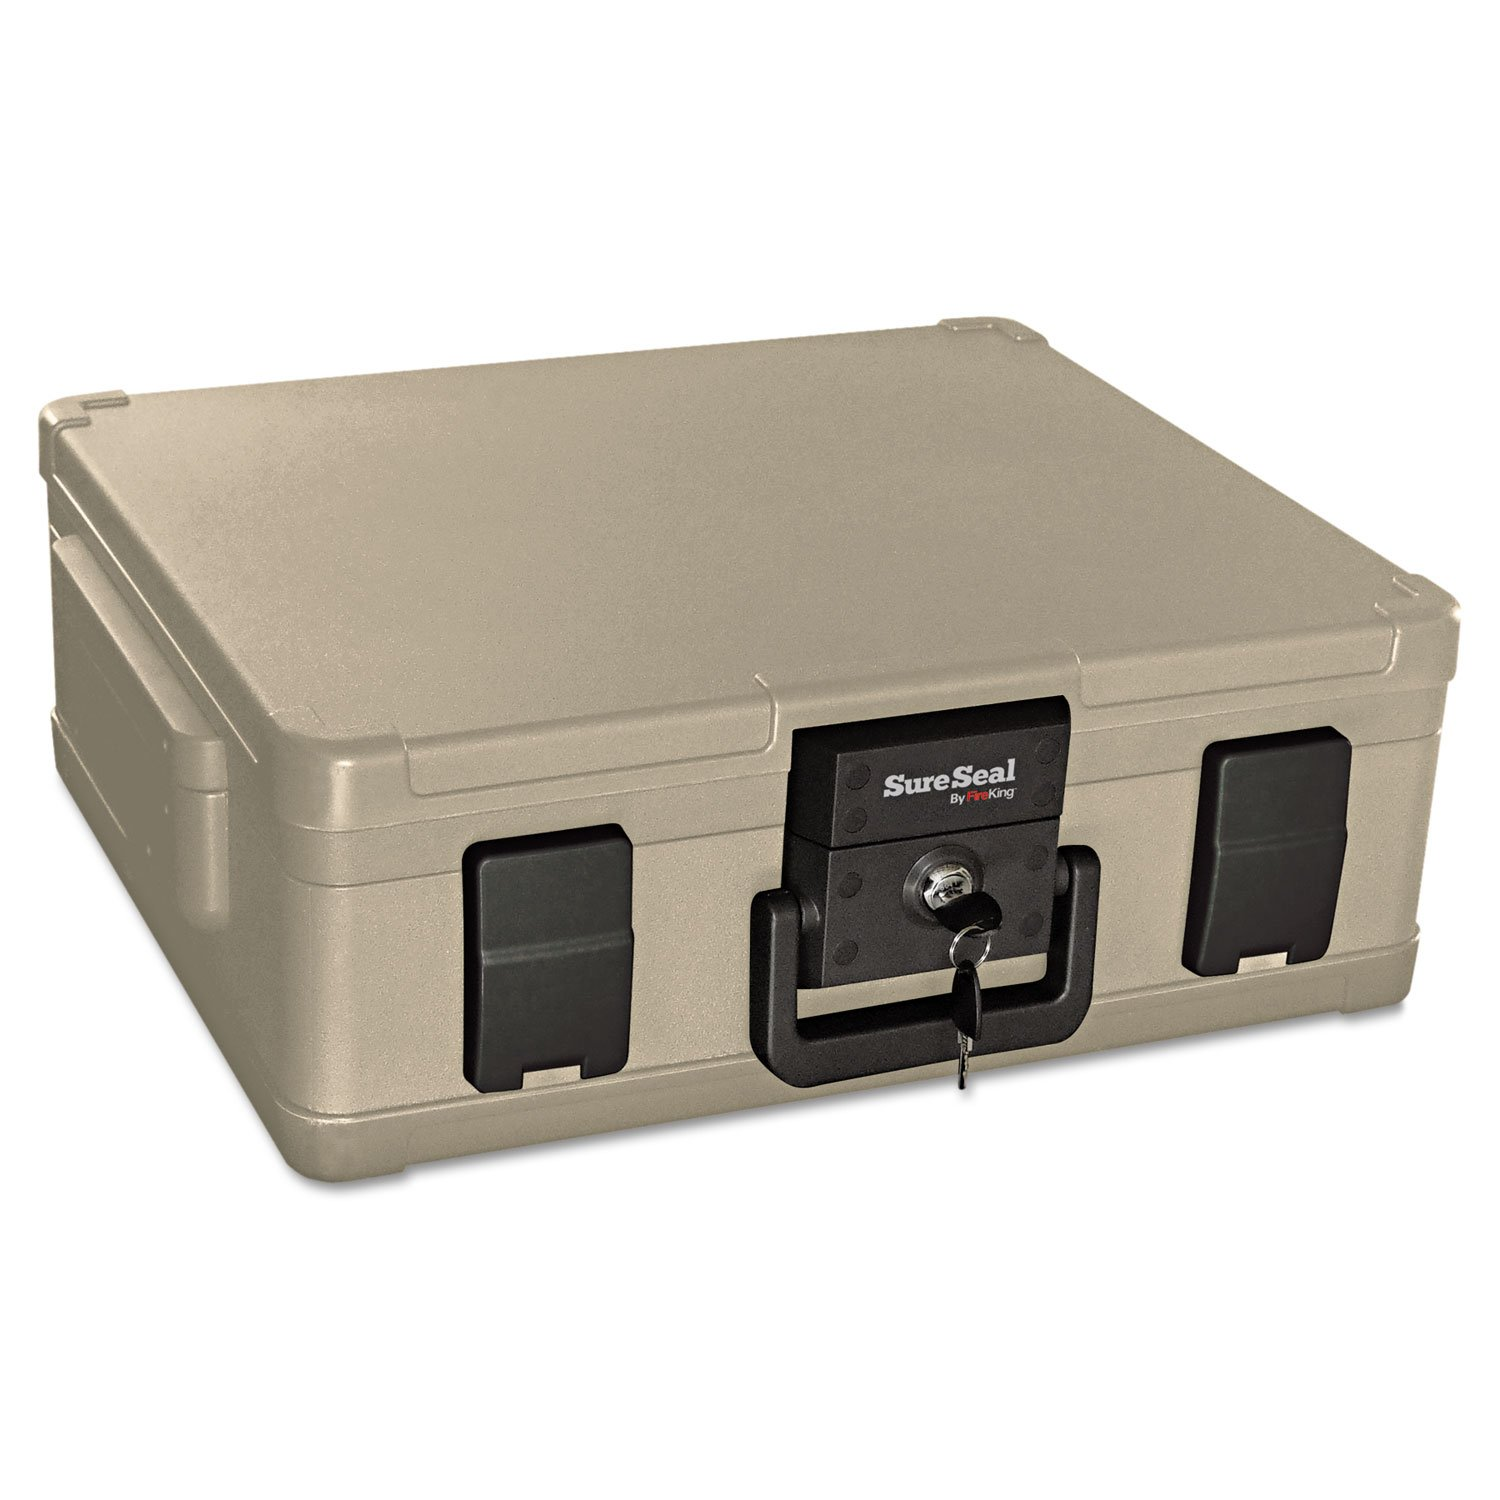 SureSeal By FireKing SS104 Fire and Waterproof Chest, 0.38 ft3, 19-9/10w x 17d x 7-3/10h, Taupe